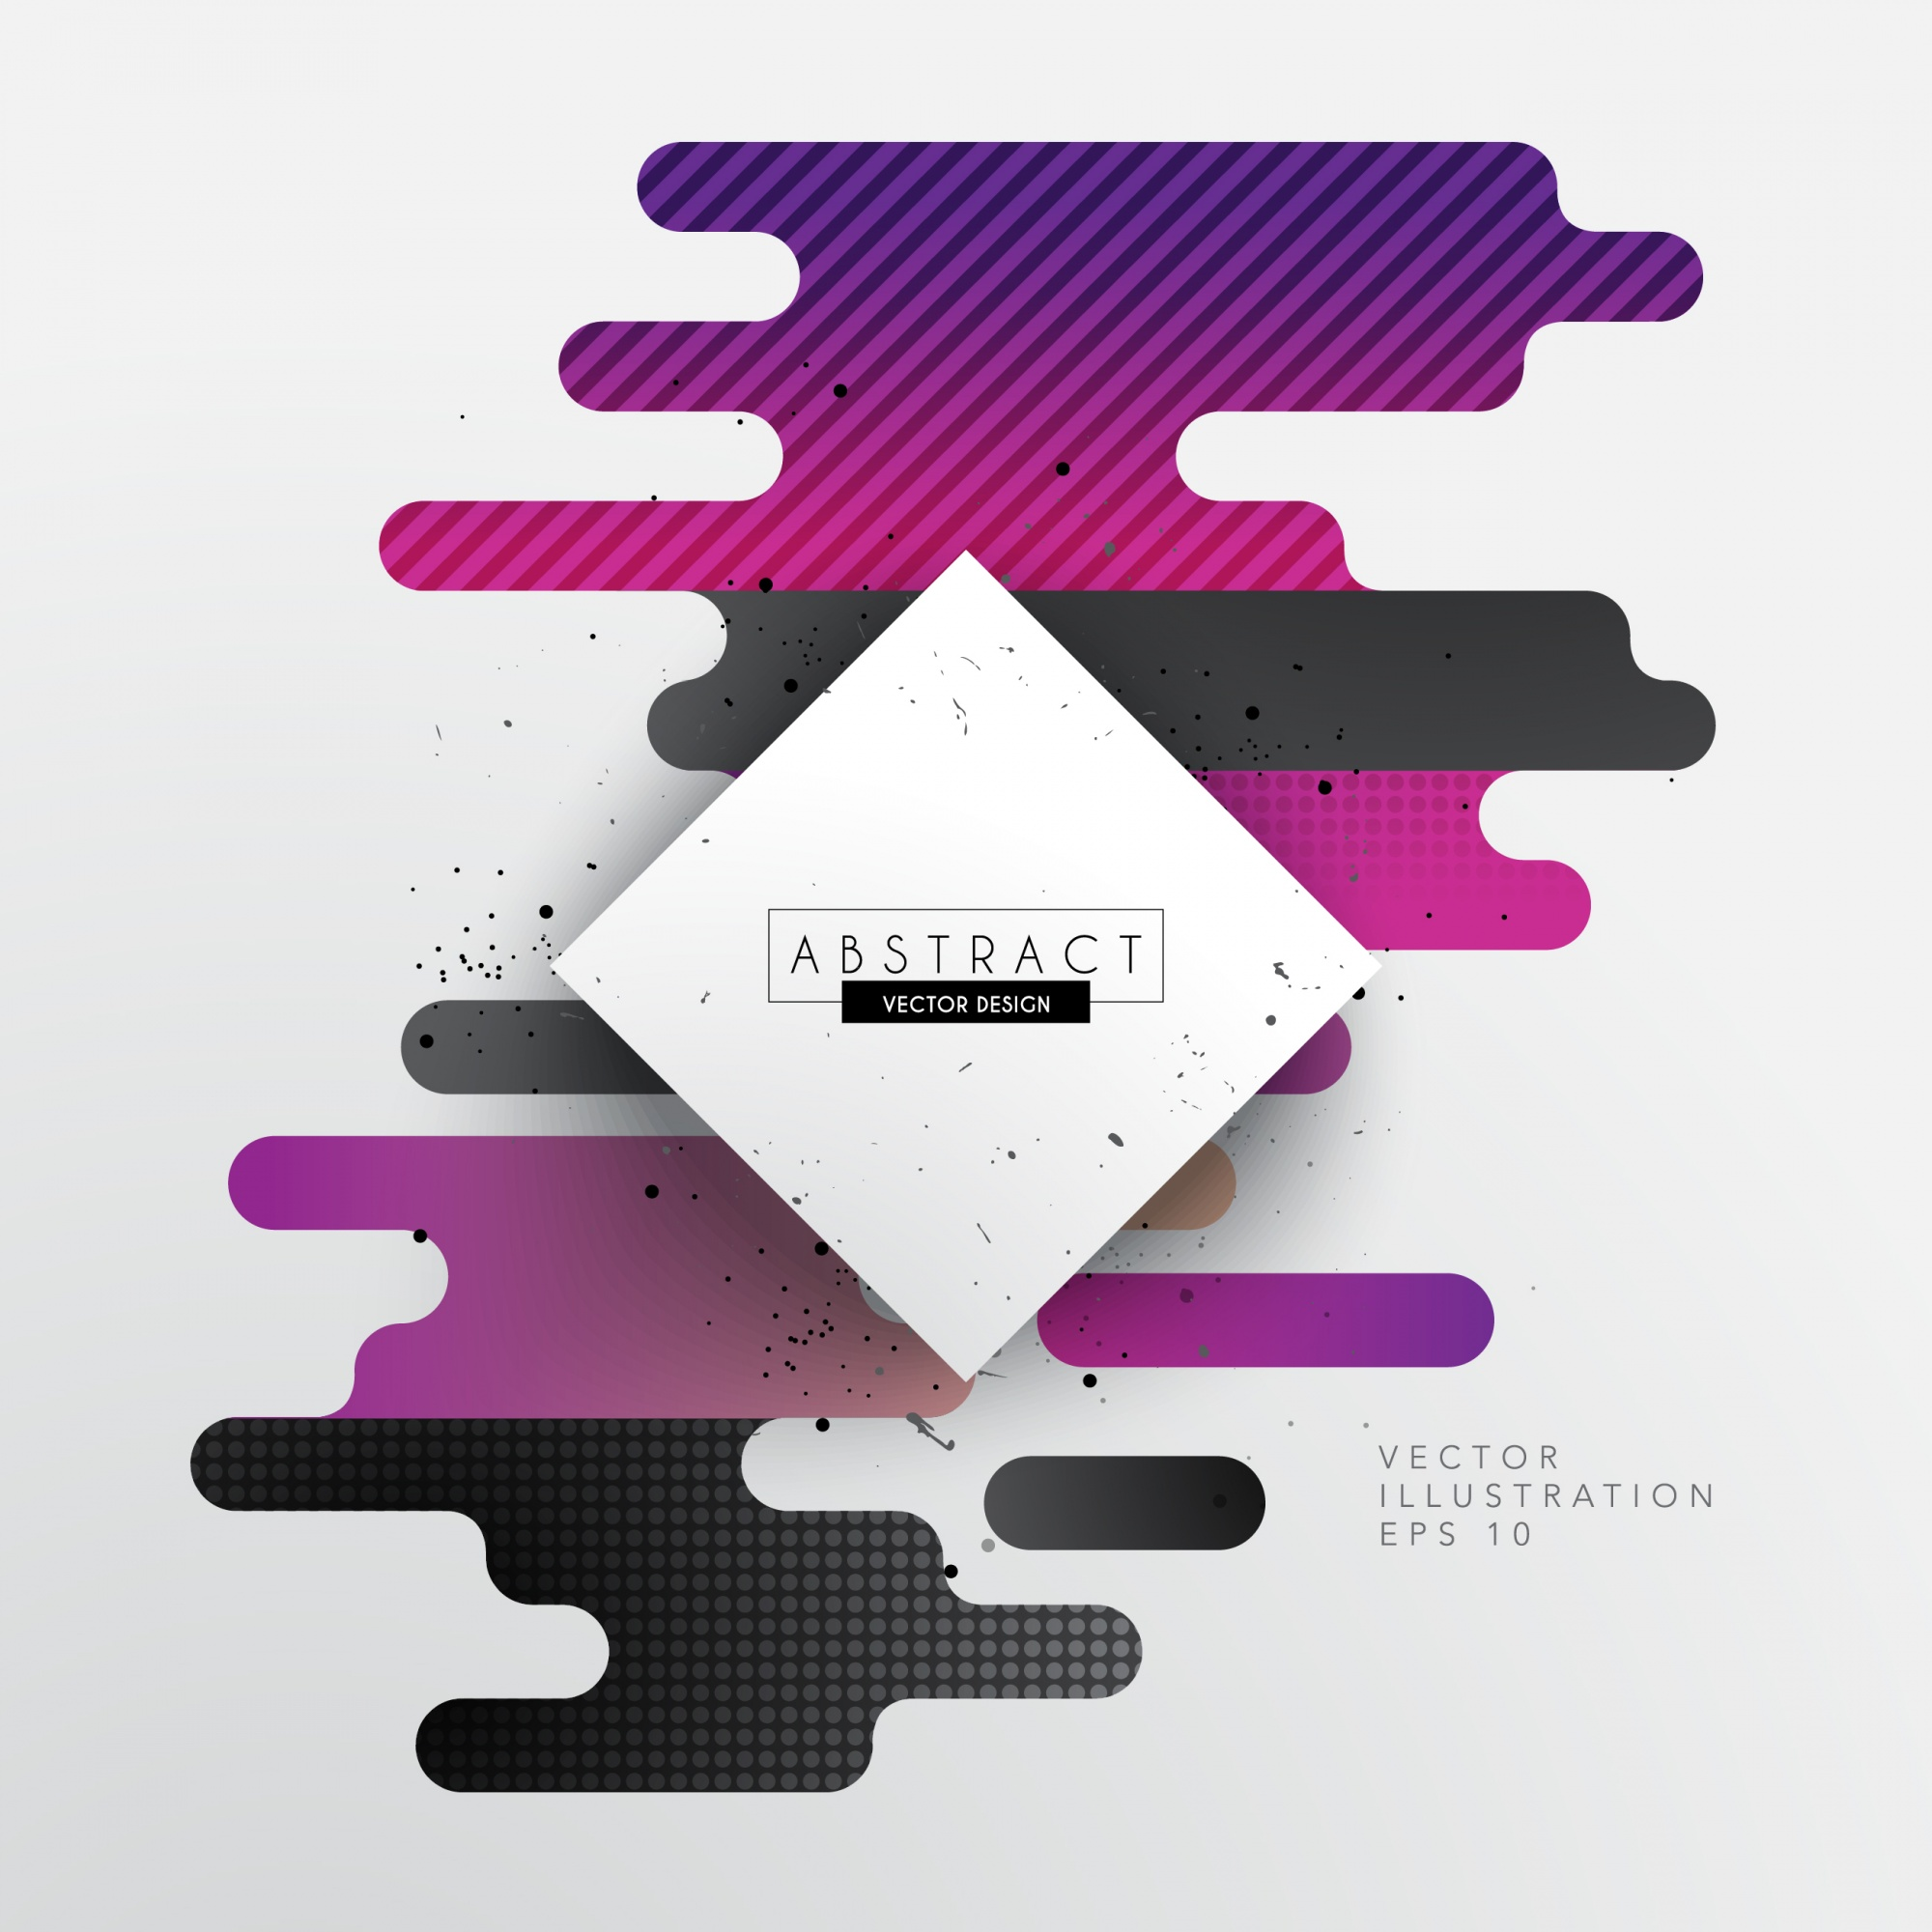 Geometric background with purple round shapes